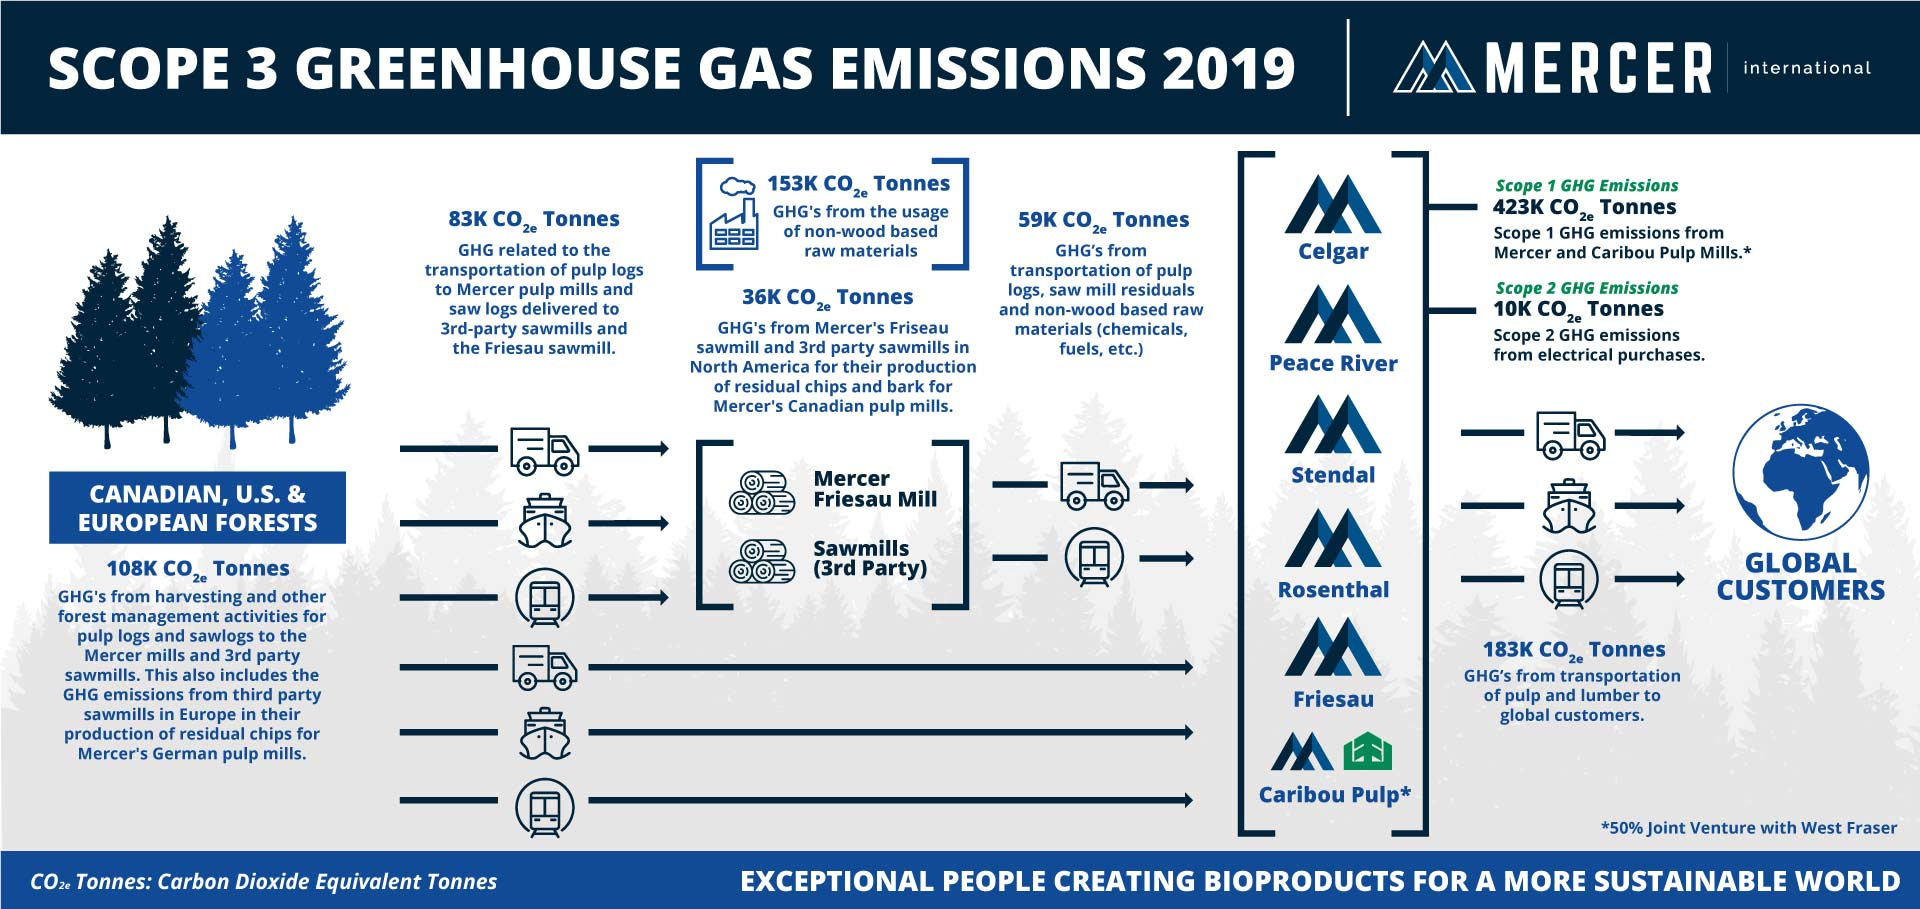 mercer-sustainability-climate-change-scope-3-greenhouse-gas-emissions chart